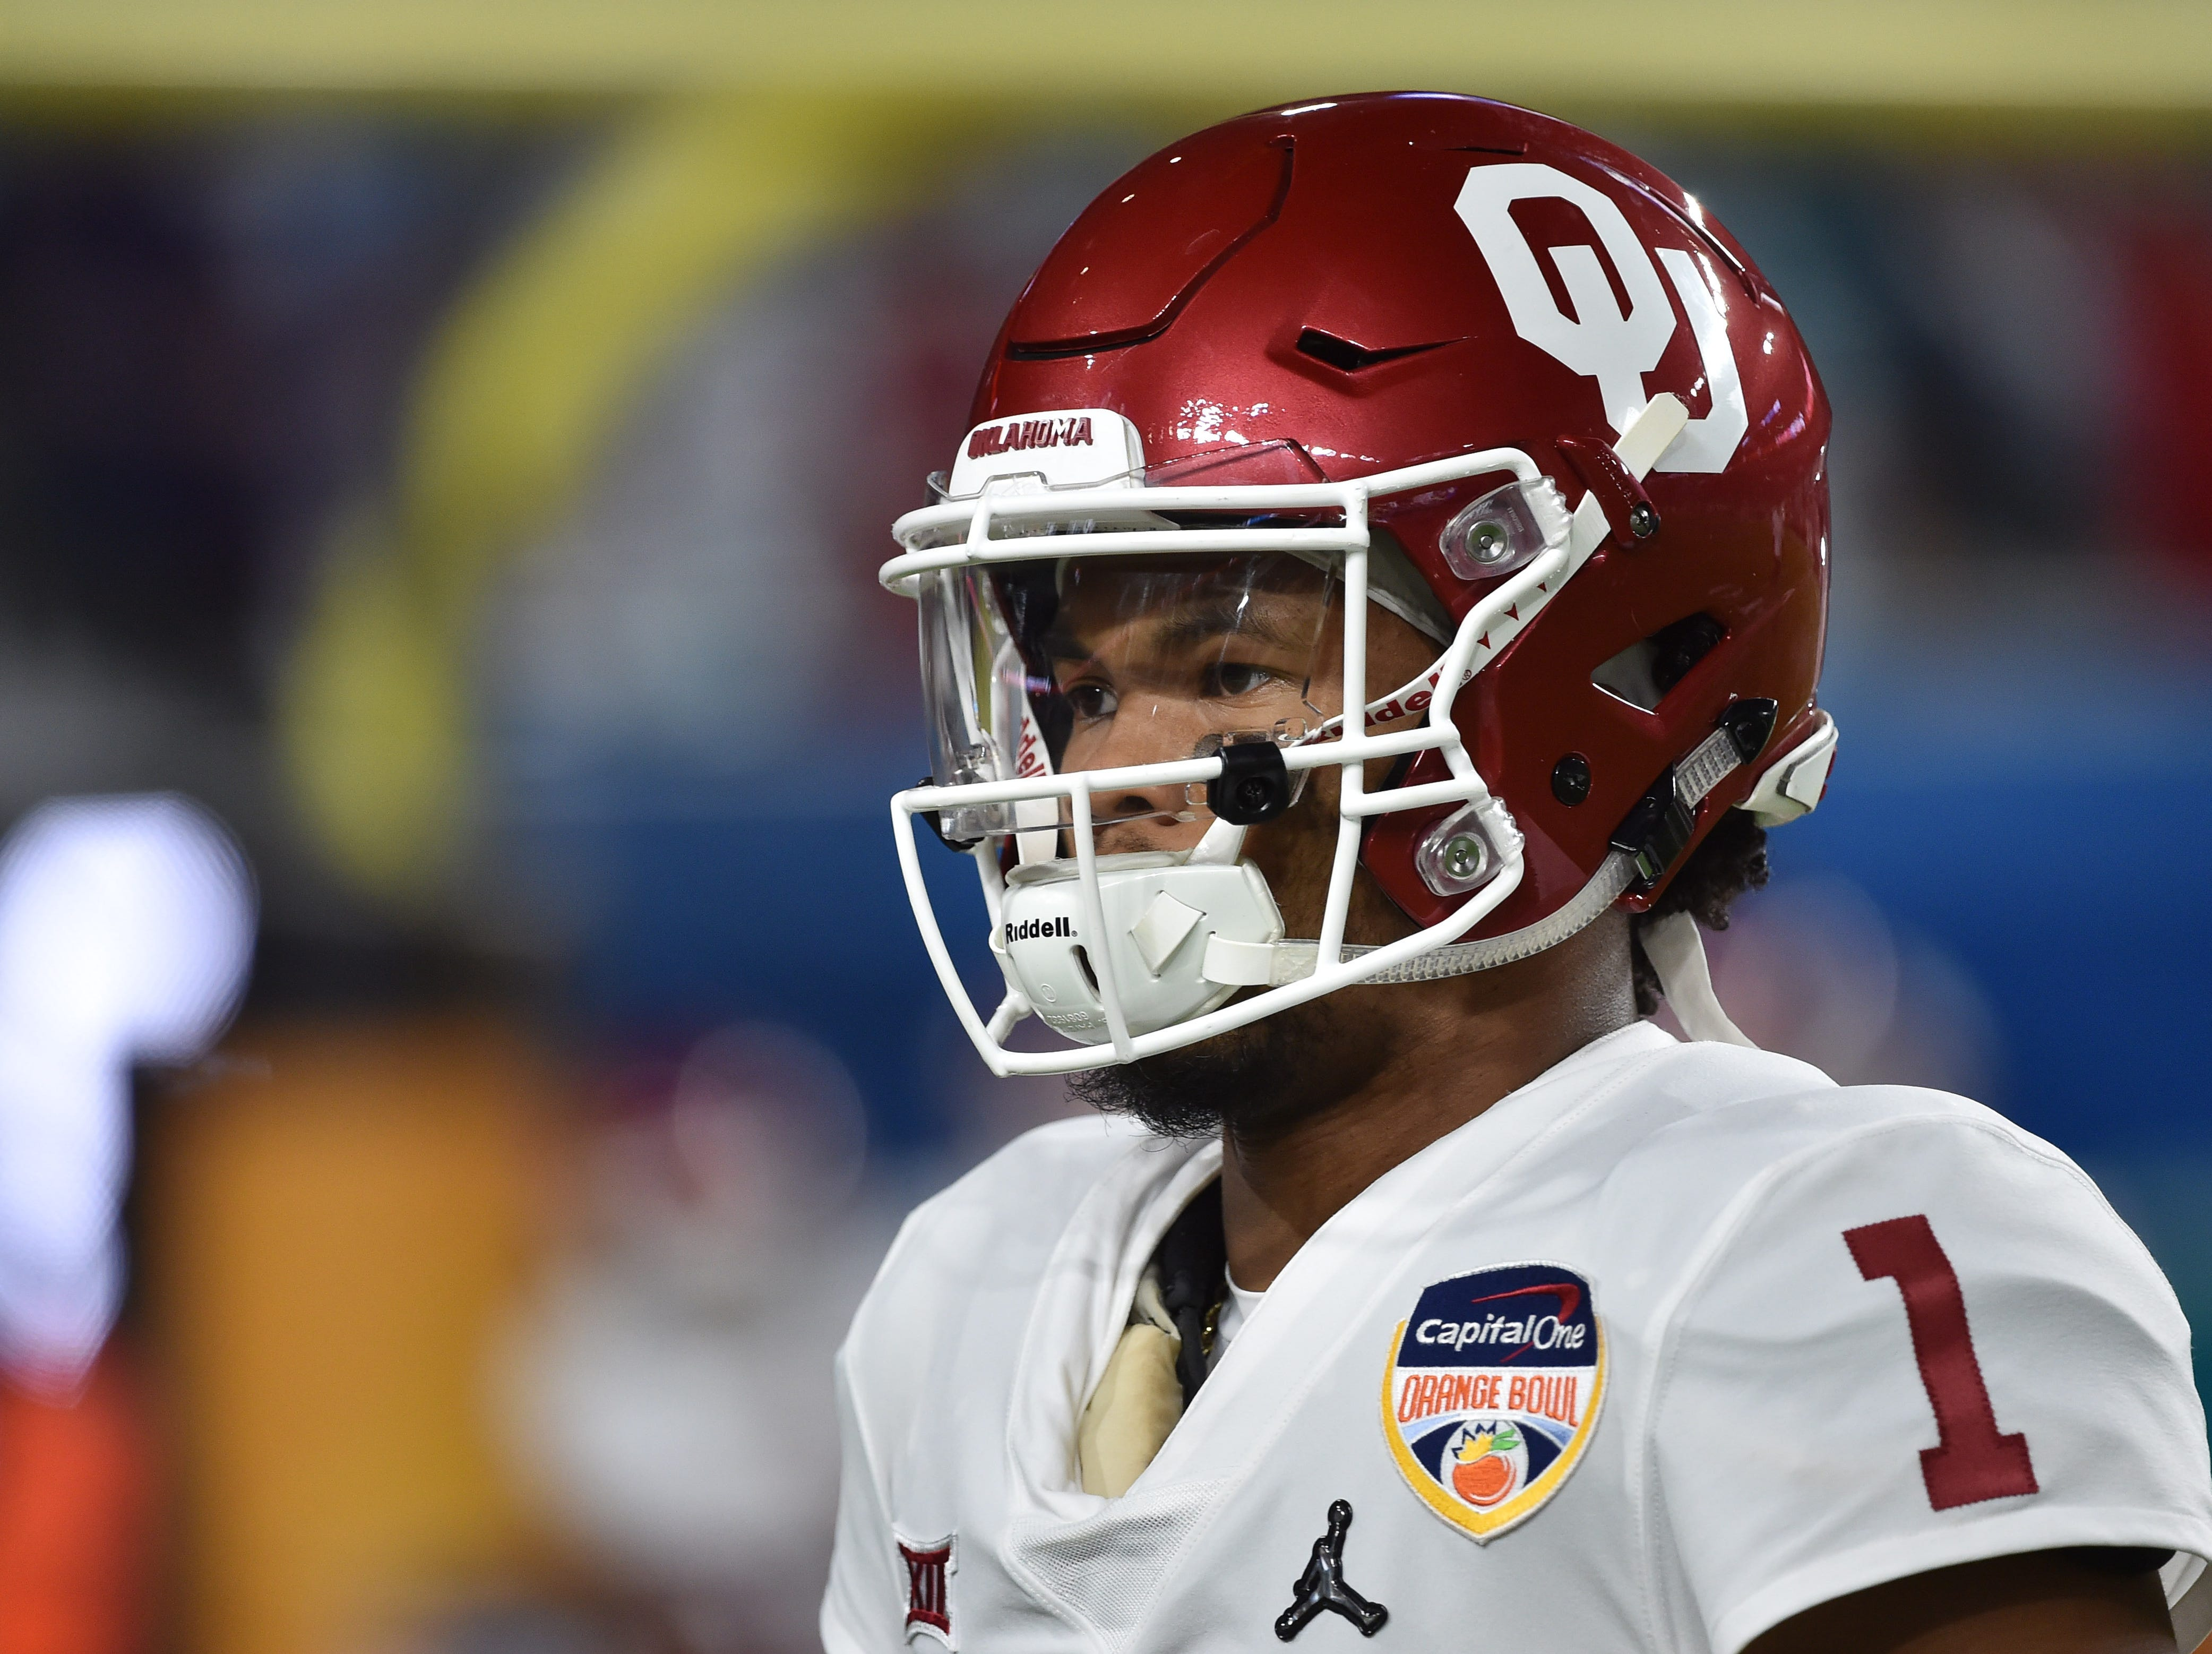 Oklahoma quarterback Kyler Murray looks on from the field prior to the start of the Orange Bowl on Dec. 29.